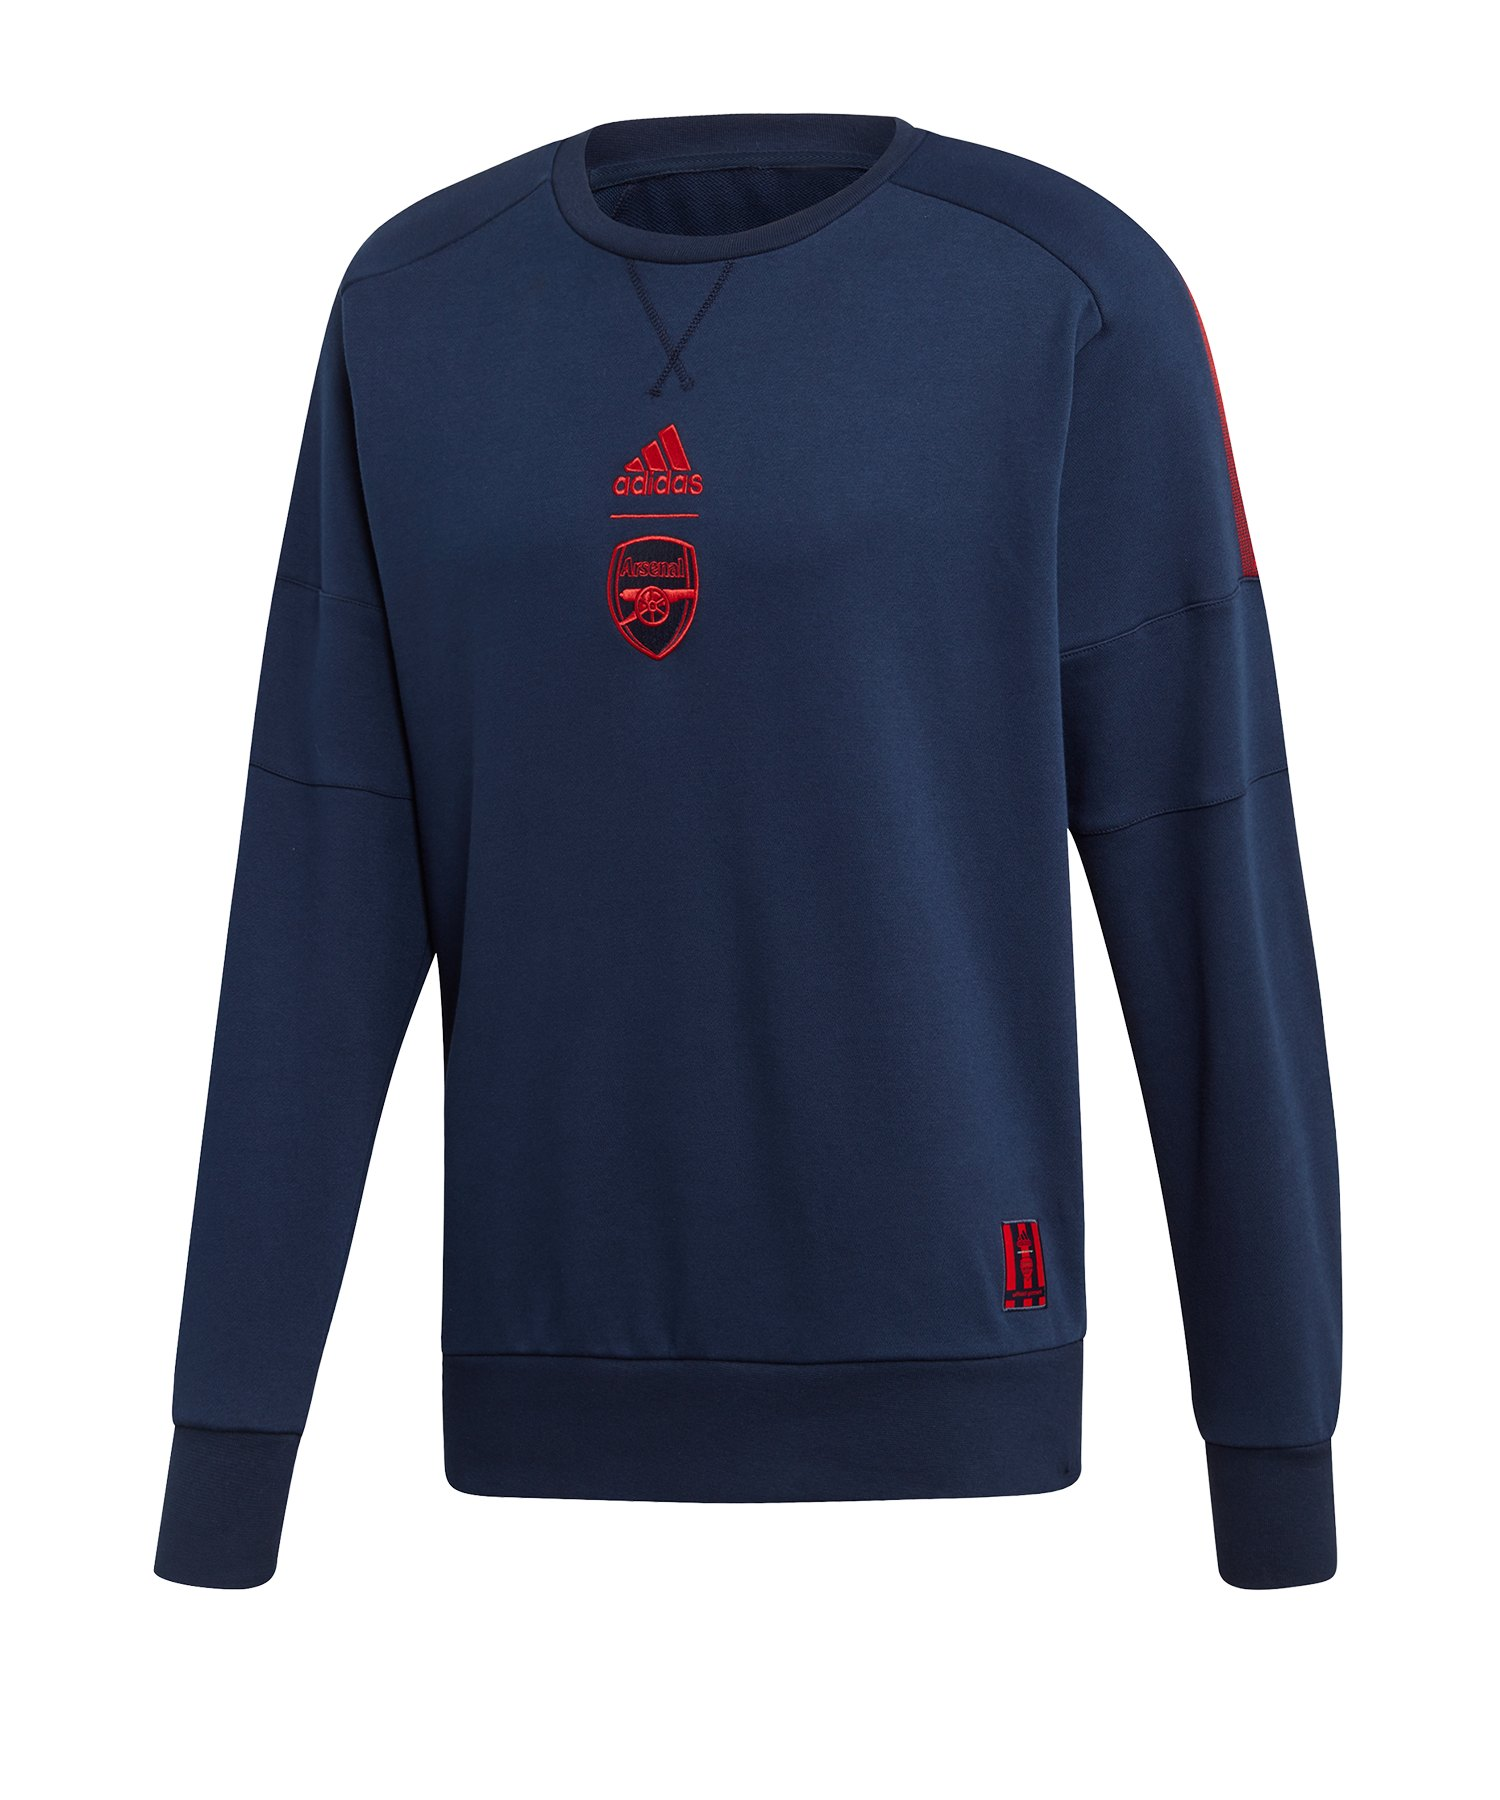 adidas FC Arsenal London Sweatshirt Blau - blau